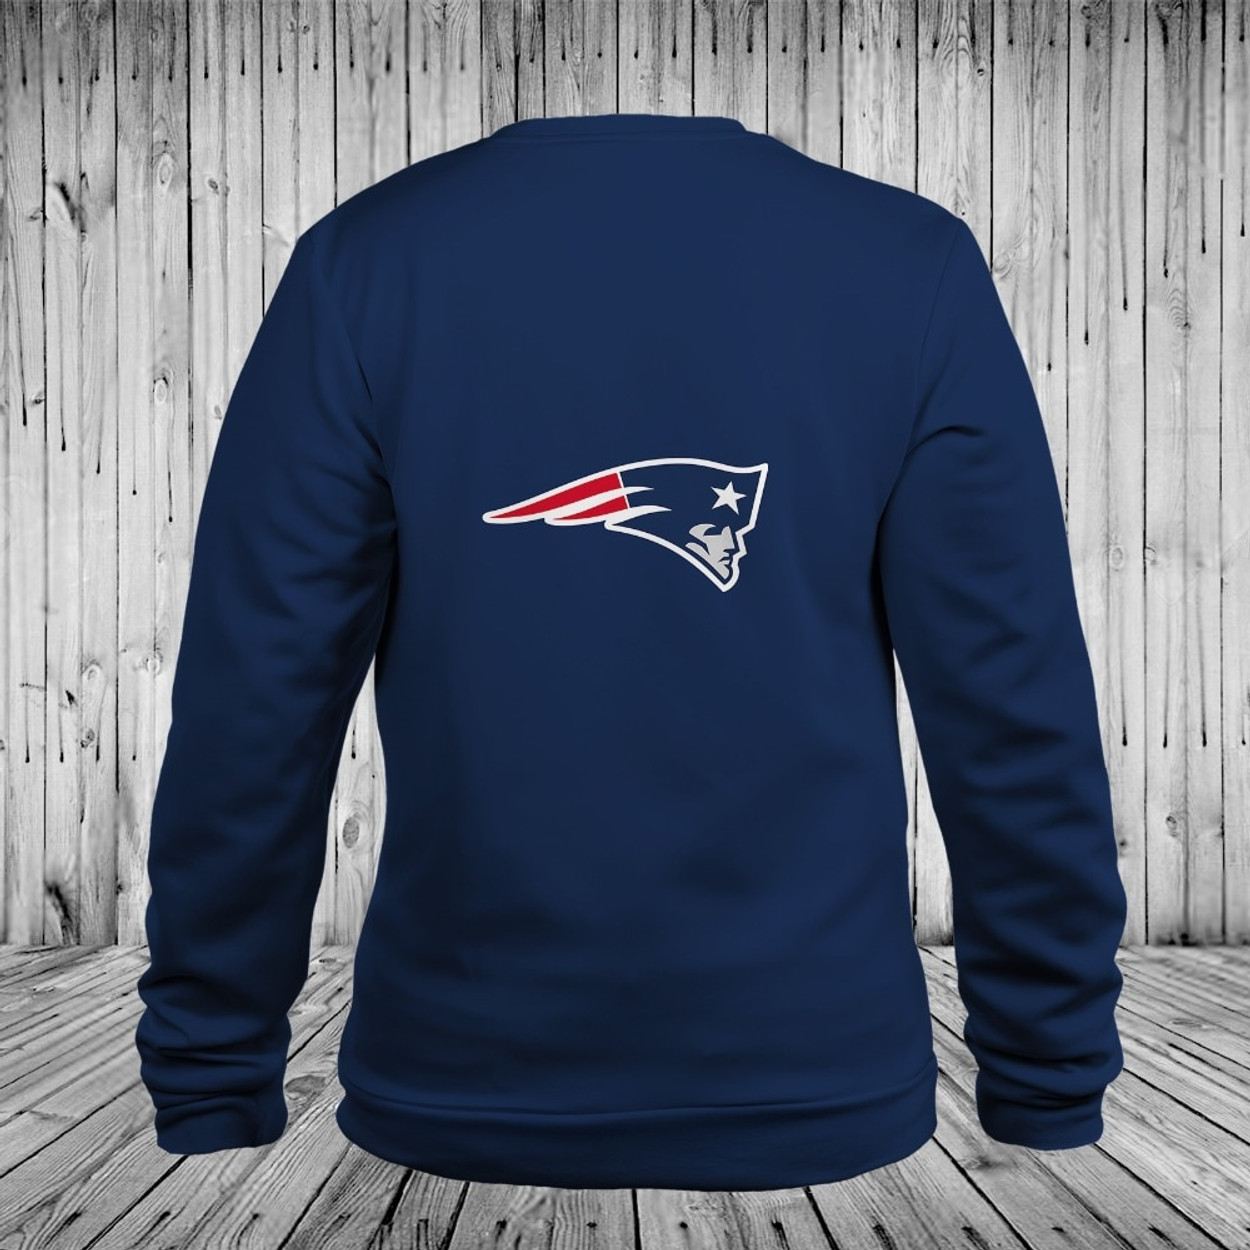 bf23afa1e   (OFFICIALLY-LICENSED-N.F.L.NEW-ENGLAND-PATRIOTS-TEAM-LONG-SLEEVE-TEES NICE -CUSTOM-3D-GRAPHIC-PRINTED-DOUBLE-SIDED-ALL-OVER-GRAPHIC-PATRIOTS-LOGOS ...